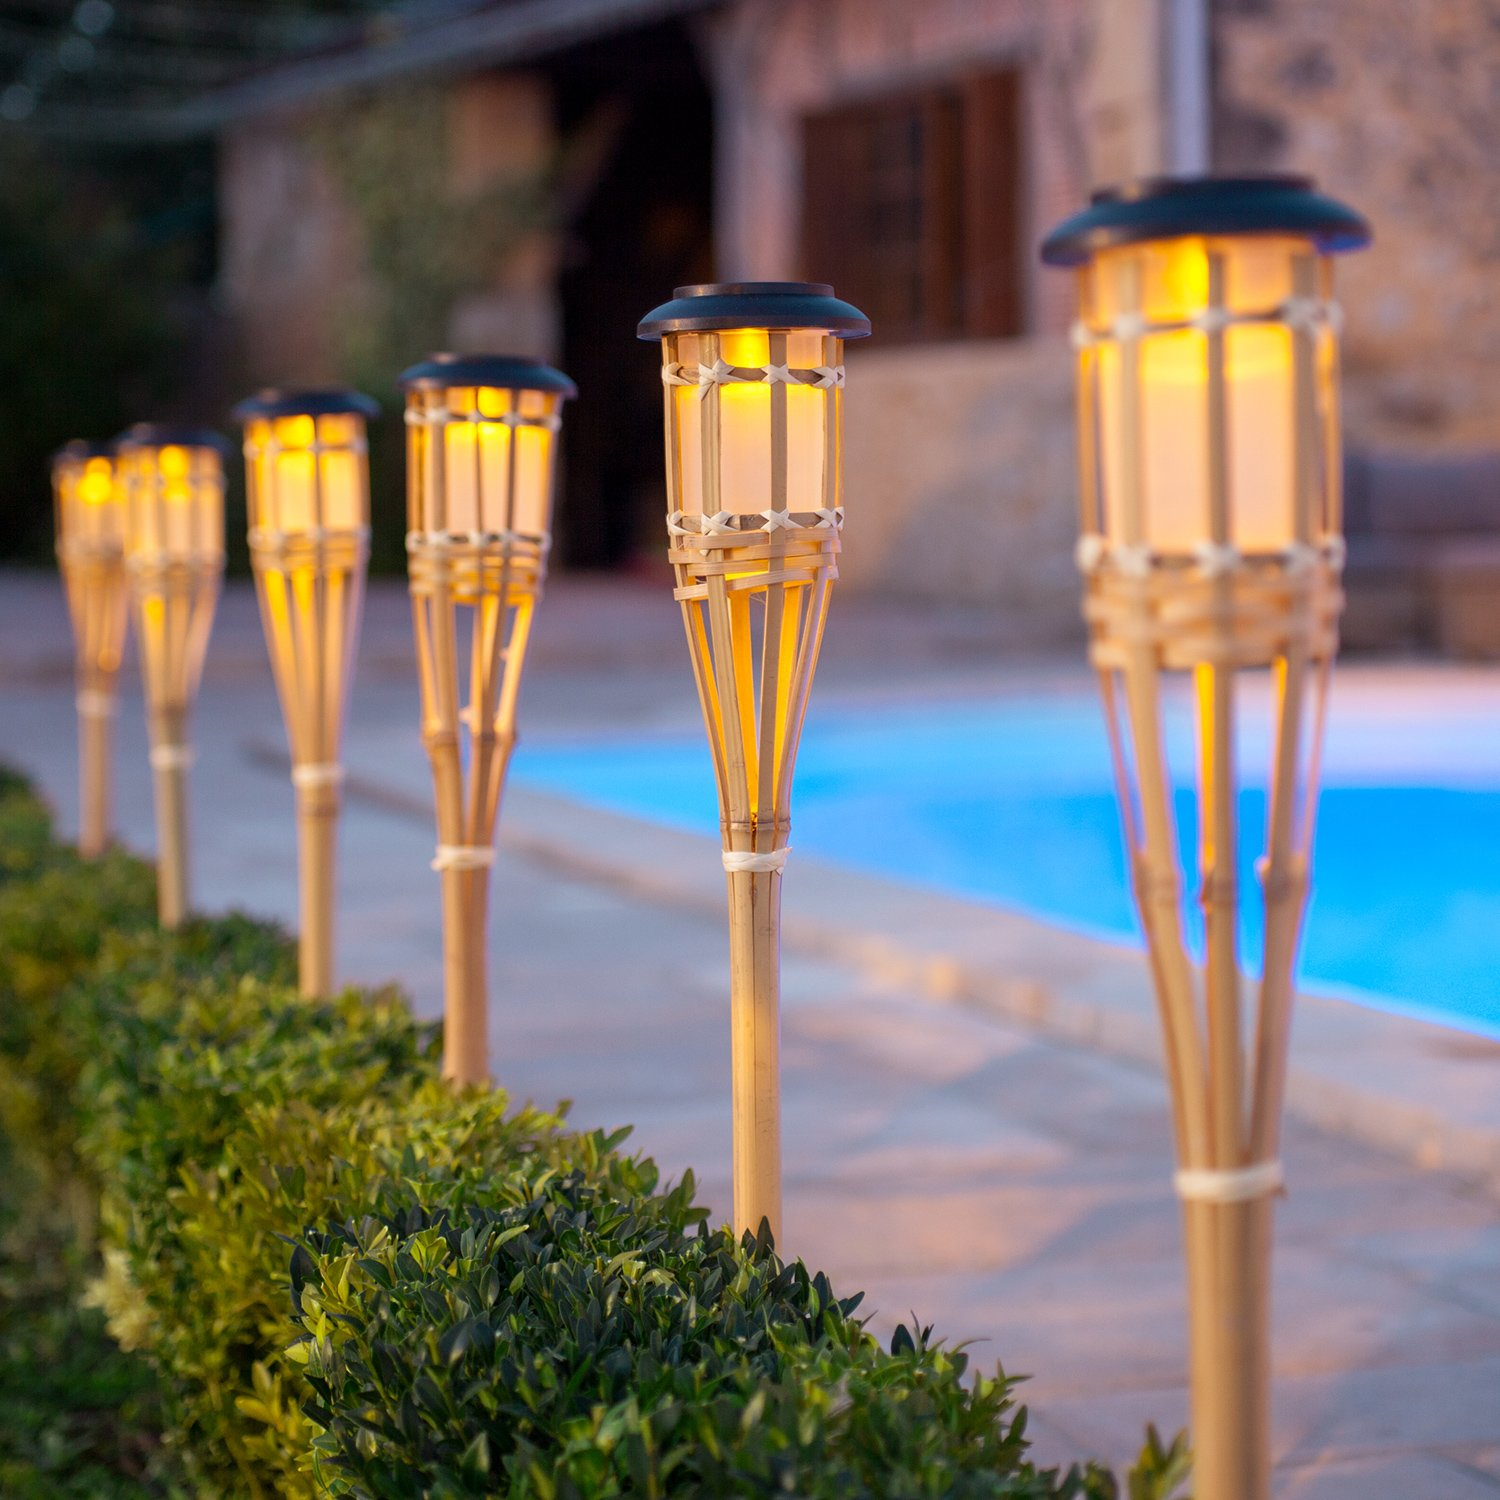 Captivating Set Of 10 Large Solar Powered LED Bamboo Garden Torches By Lights4fun:  Amazon.co.uk: Garden U0026 Outdoors